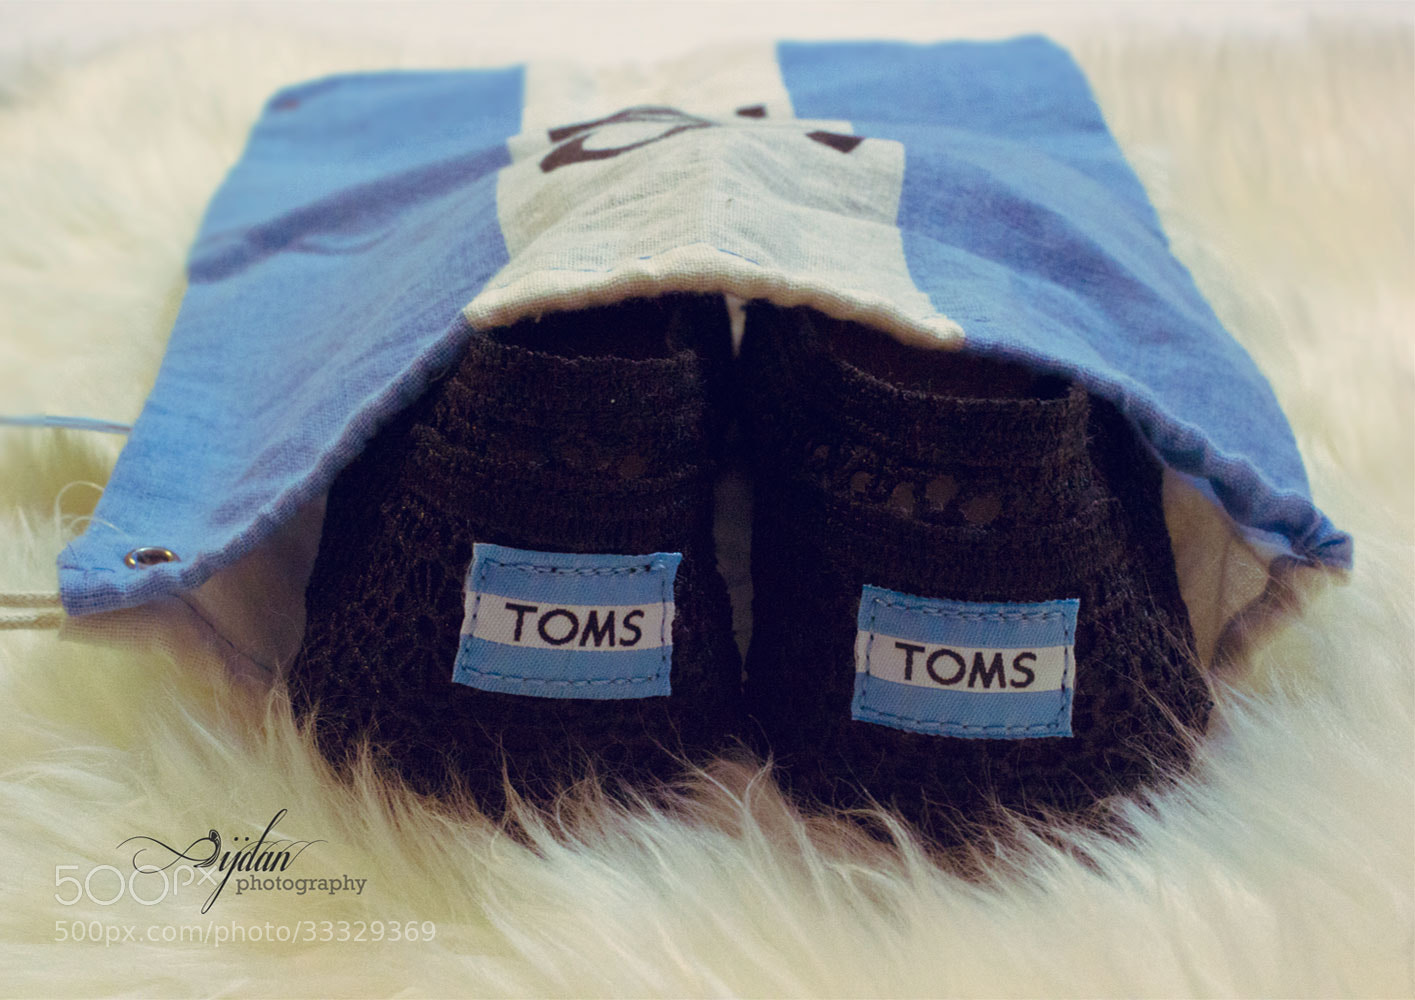 Photograph TOMS by wijdan .. on 500px